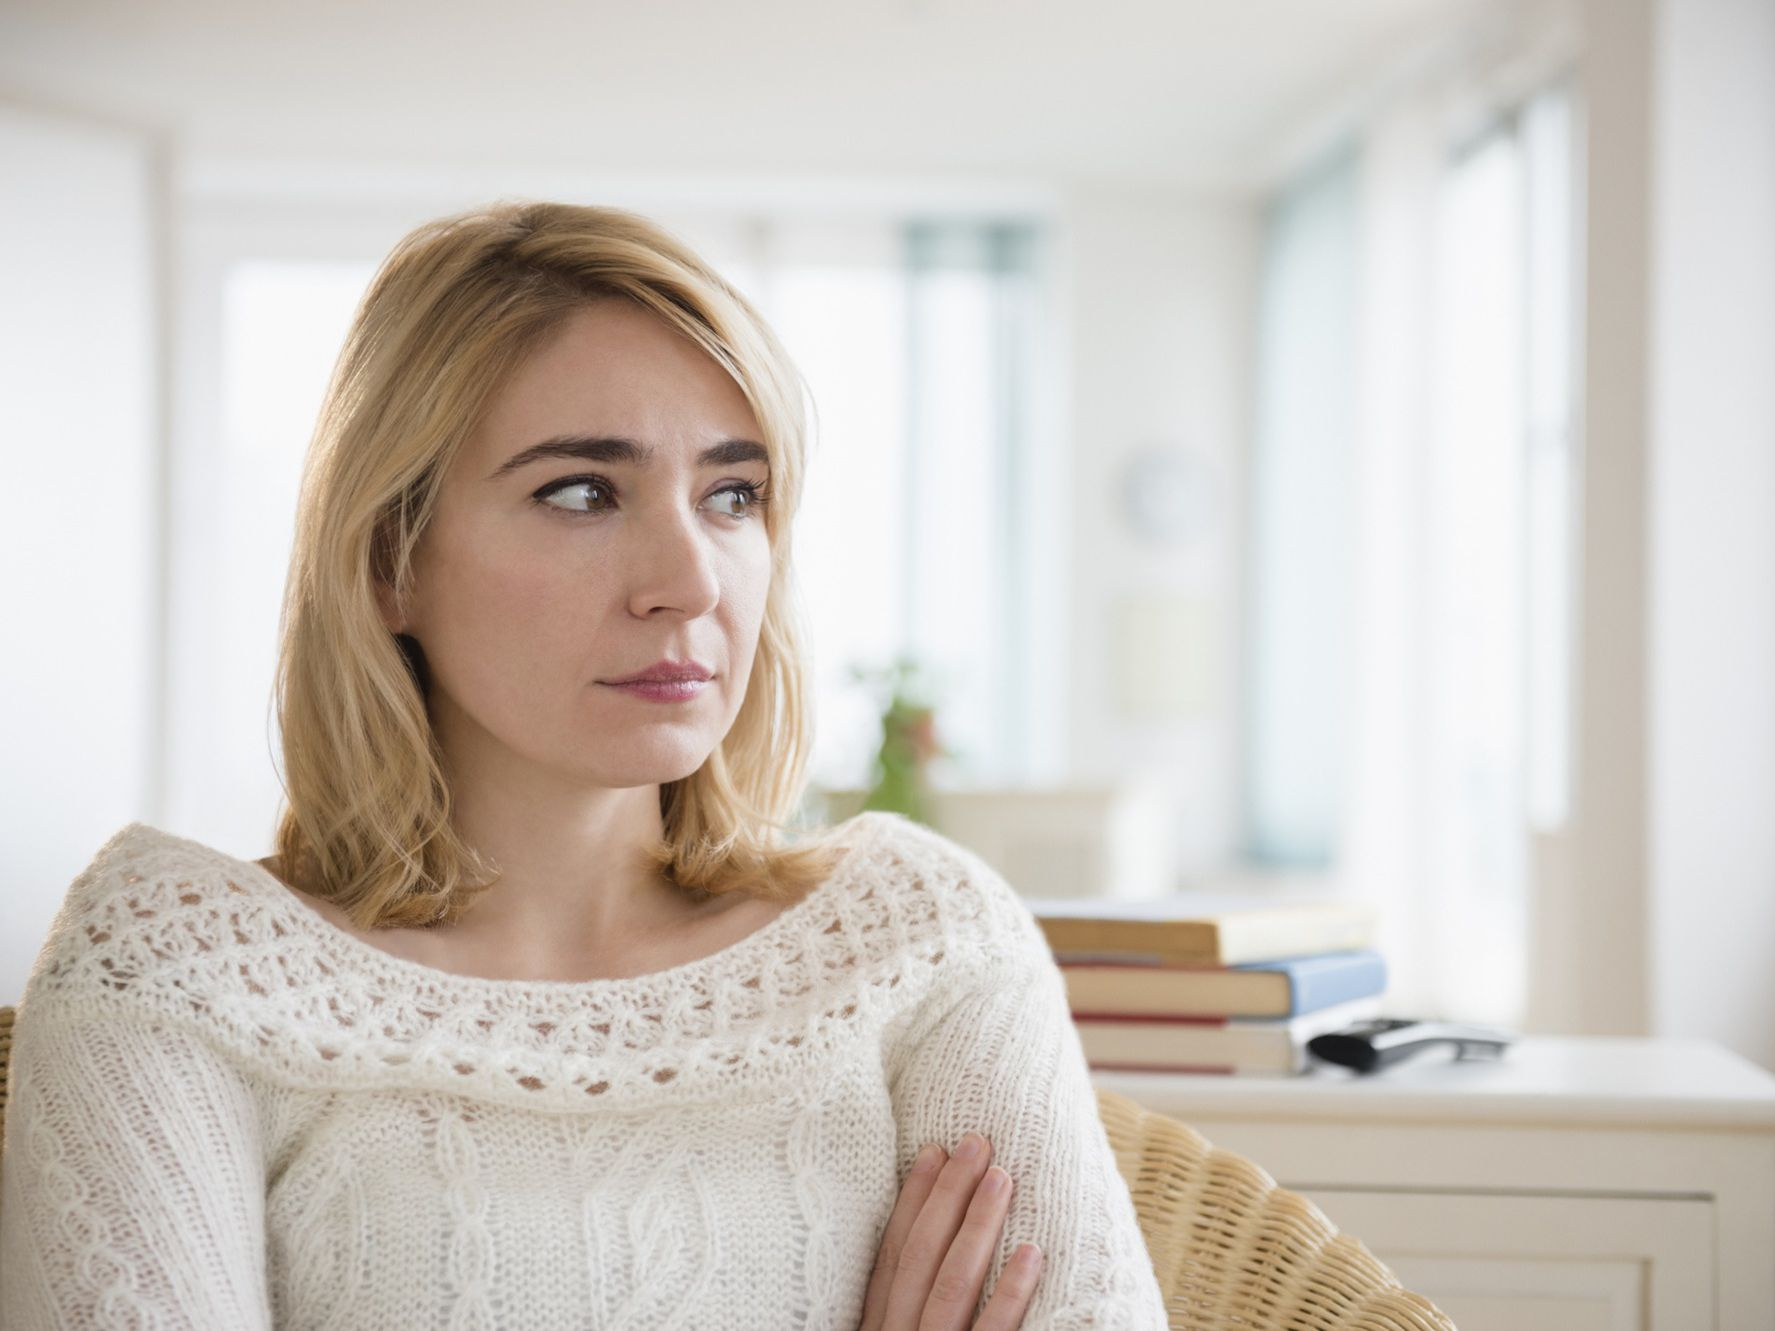 Image result for bipolar disorder woman